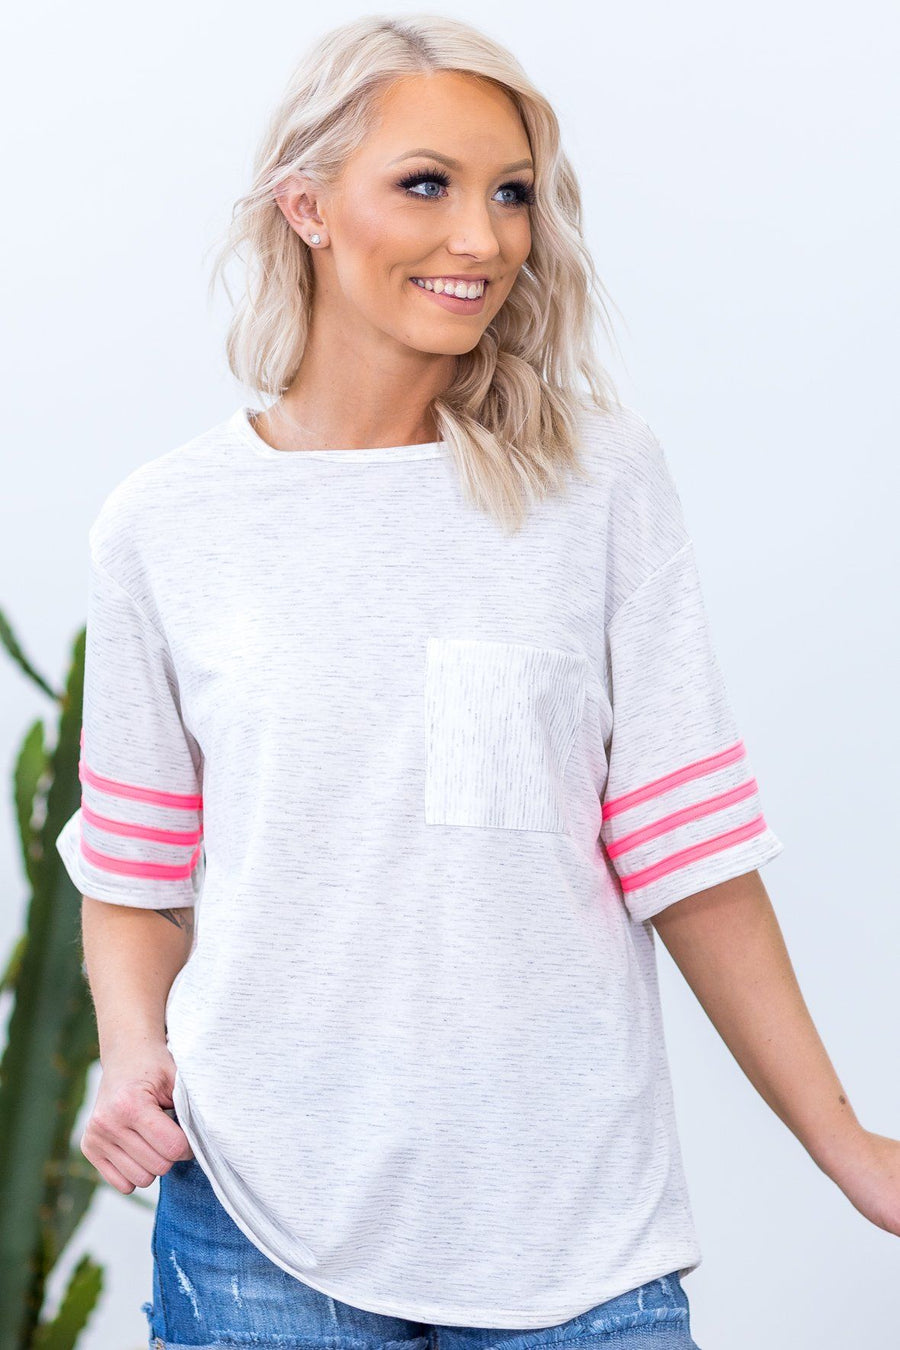 a245b69a76 Over You Short Neon Pink Stripe Sleeve Chest Pocket Top in Heather Grey